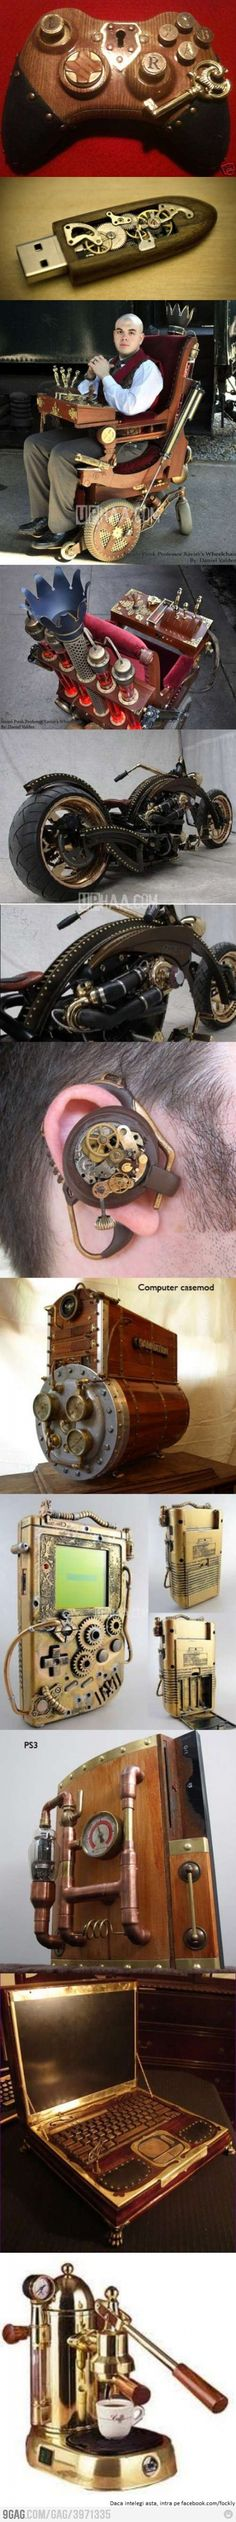 Cool Steampunk Inventions!